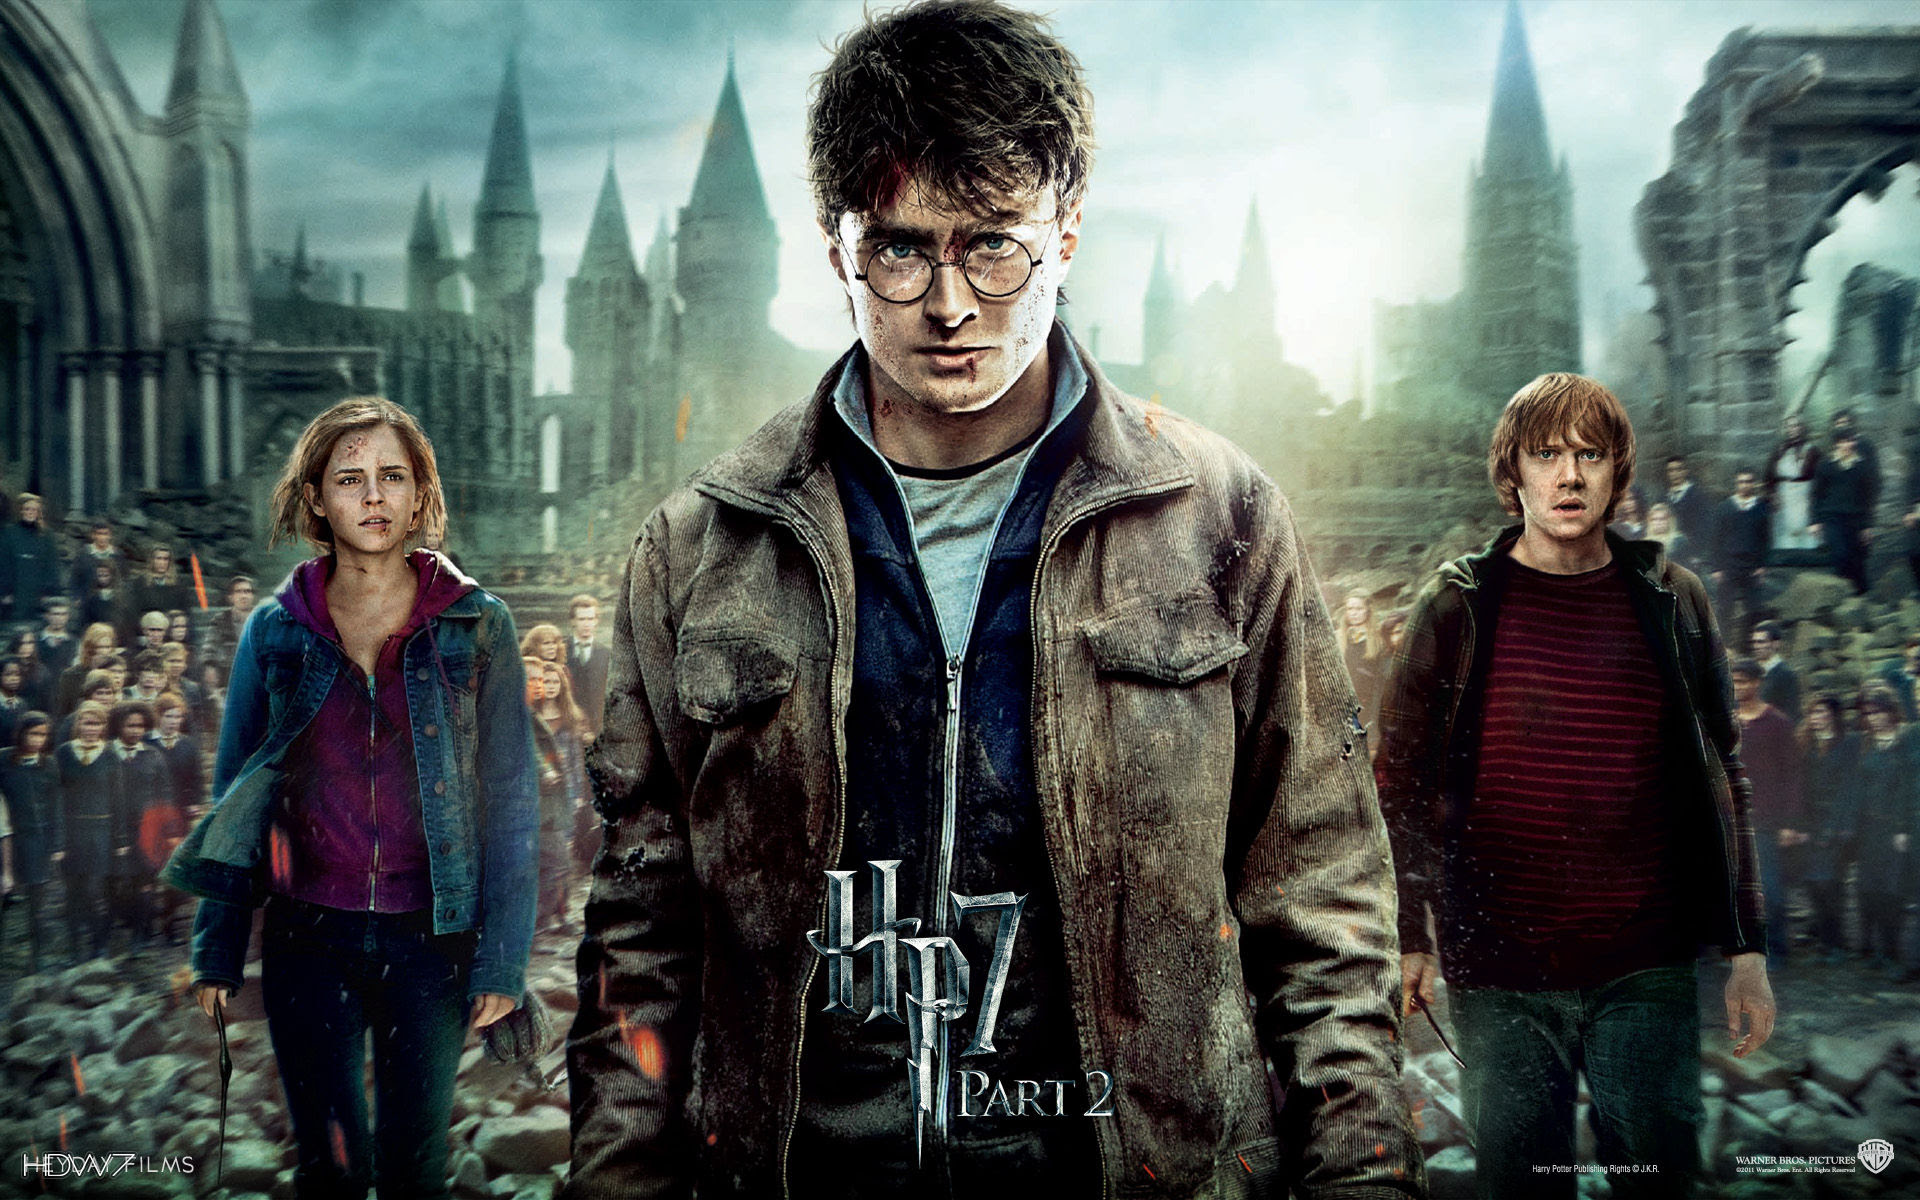 Harry Potter And The Deathly Hallows Part 2 6 Hd Wallpaper